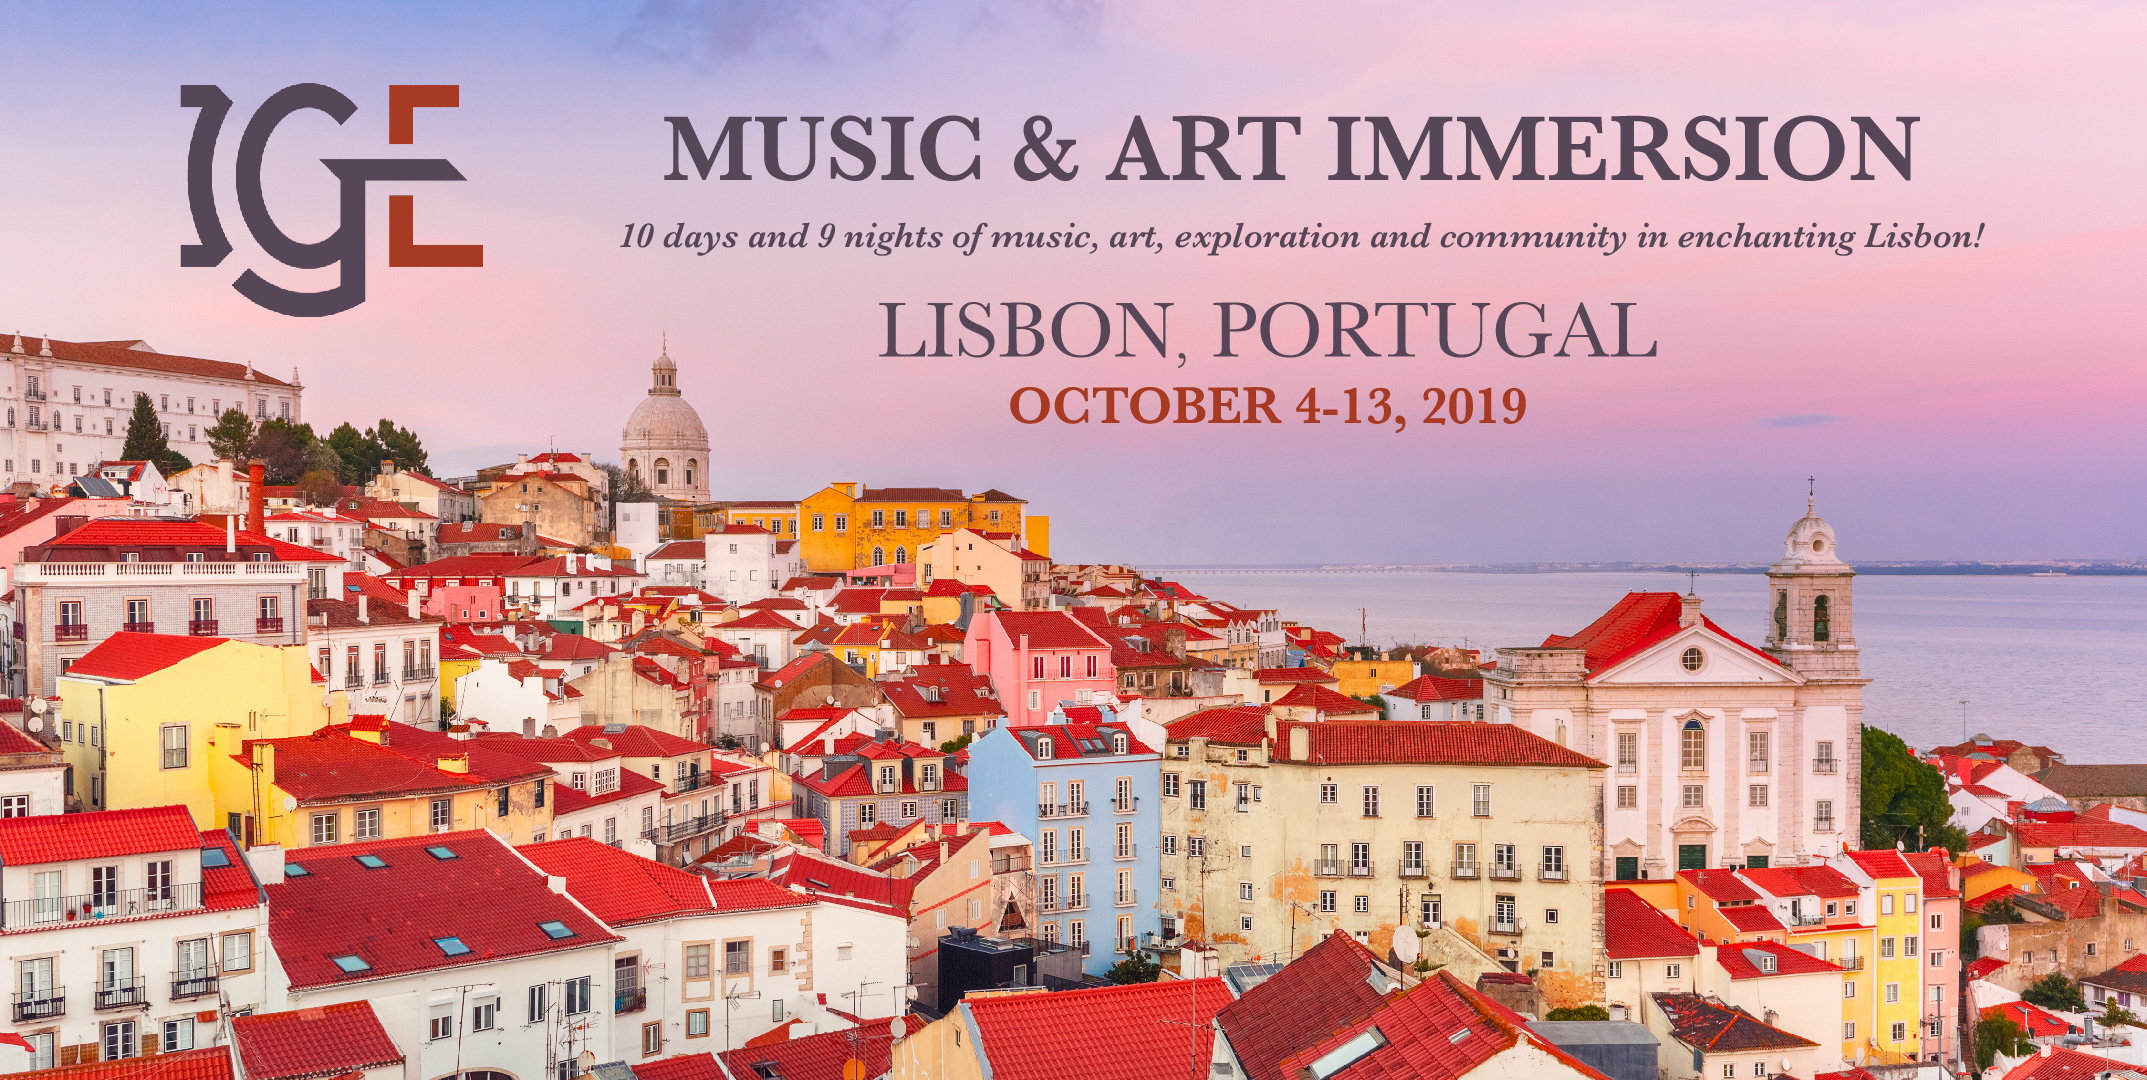 Innovative Giving Enhancement (IGE) Announces 2019 Music and Art Immersion Event in Lisbon